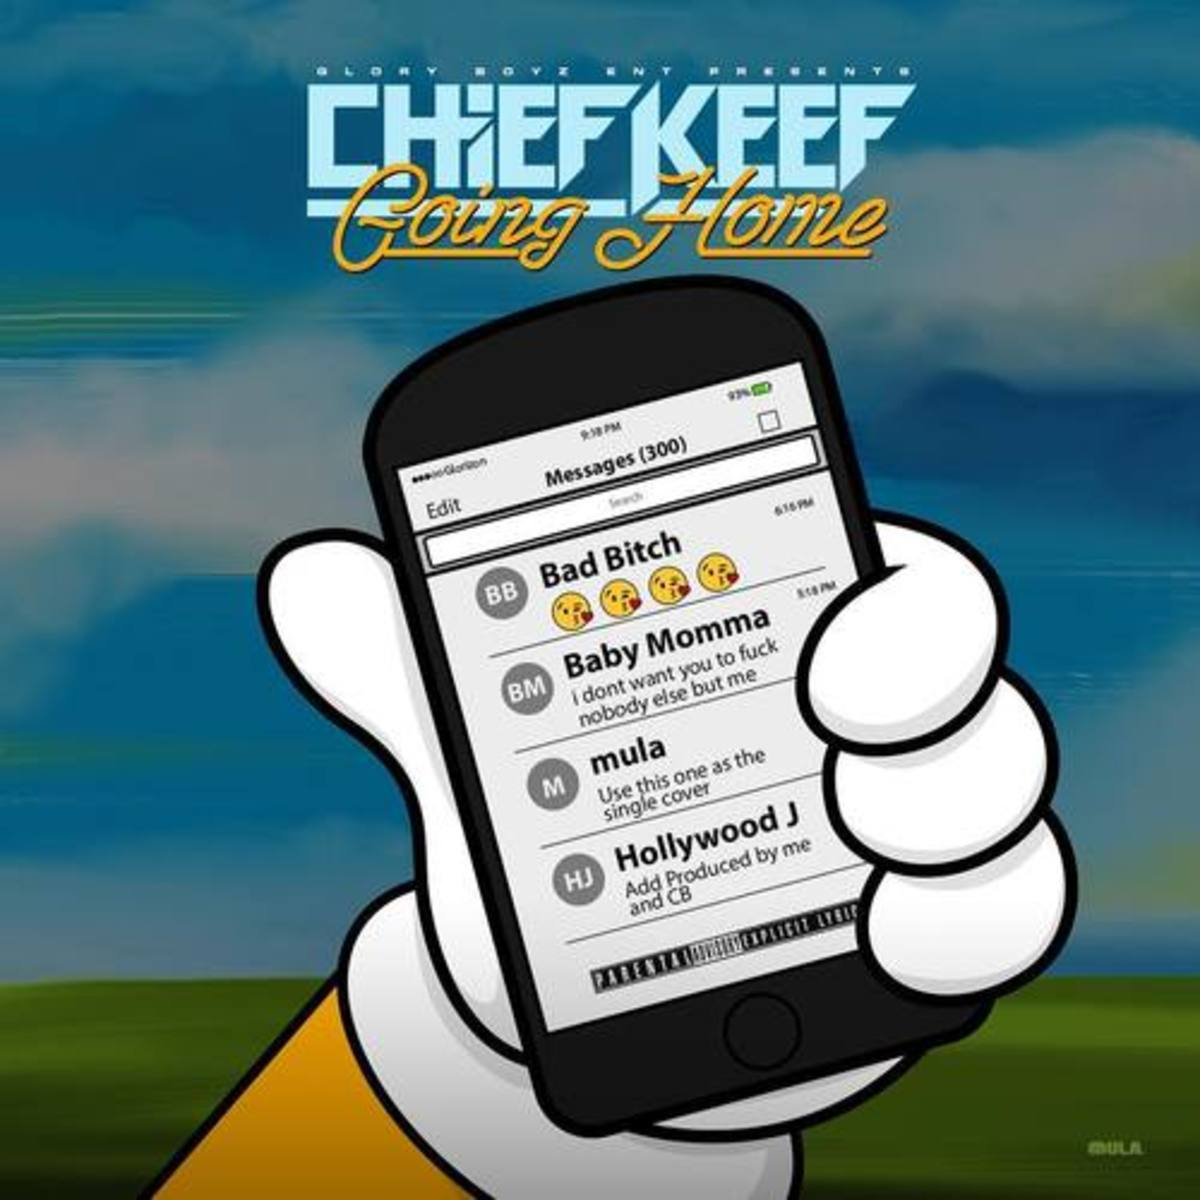 chief-keef-going-home.jpg